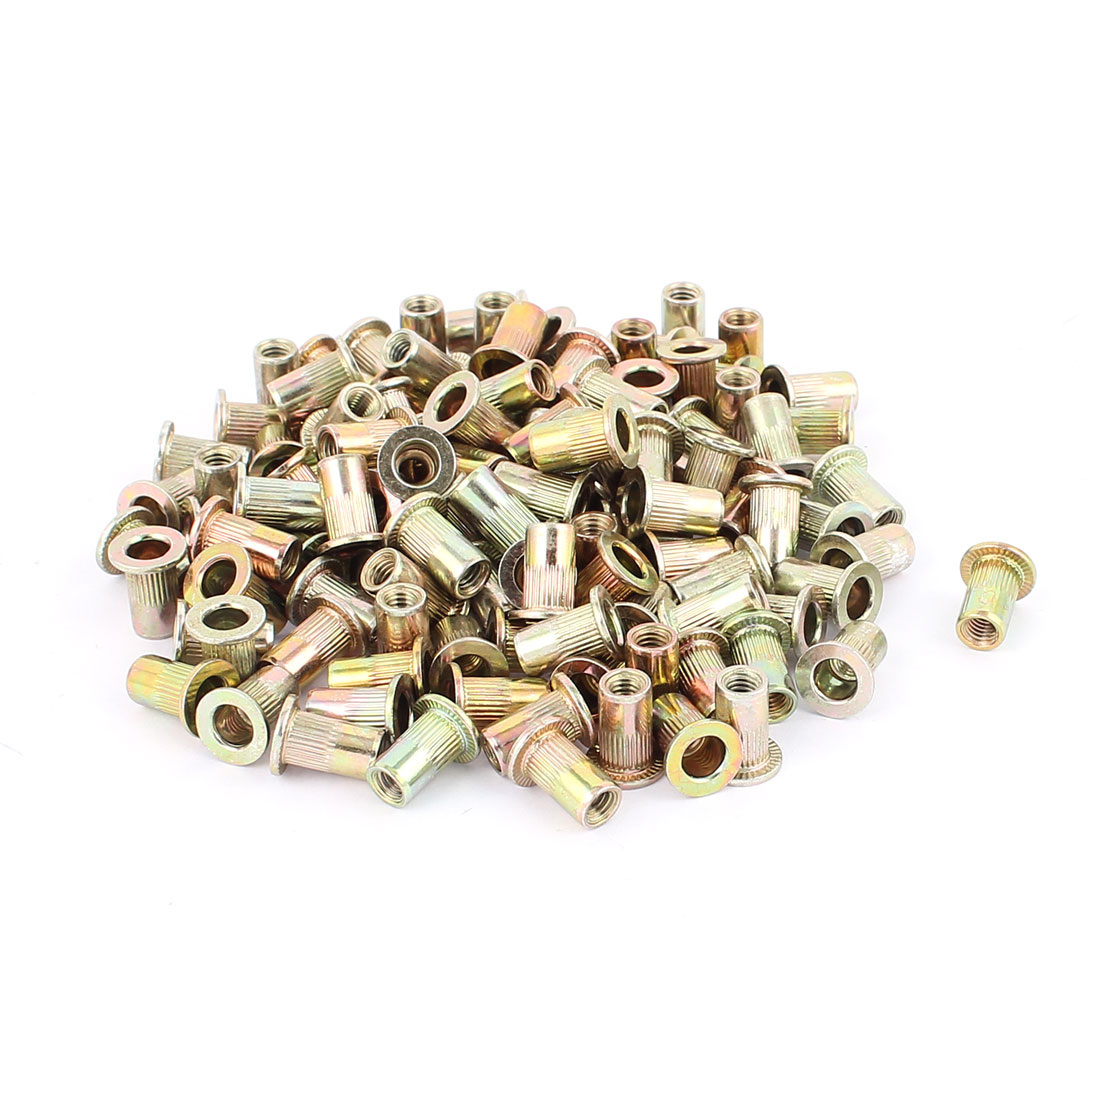 120pcs M4 Carbon Steel Countersunk Head Knurled Blind Rivet Nut Nutserts